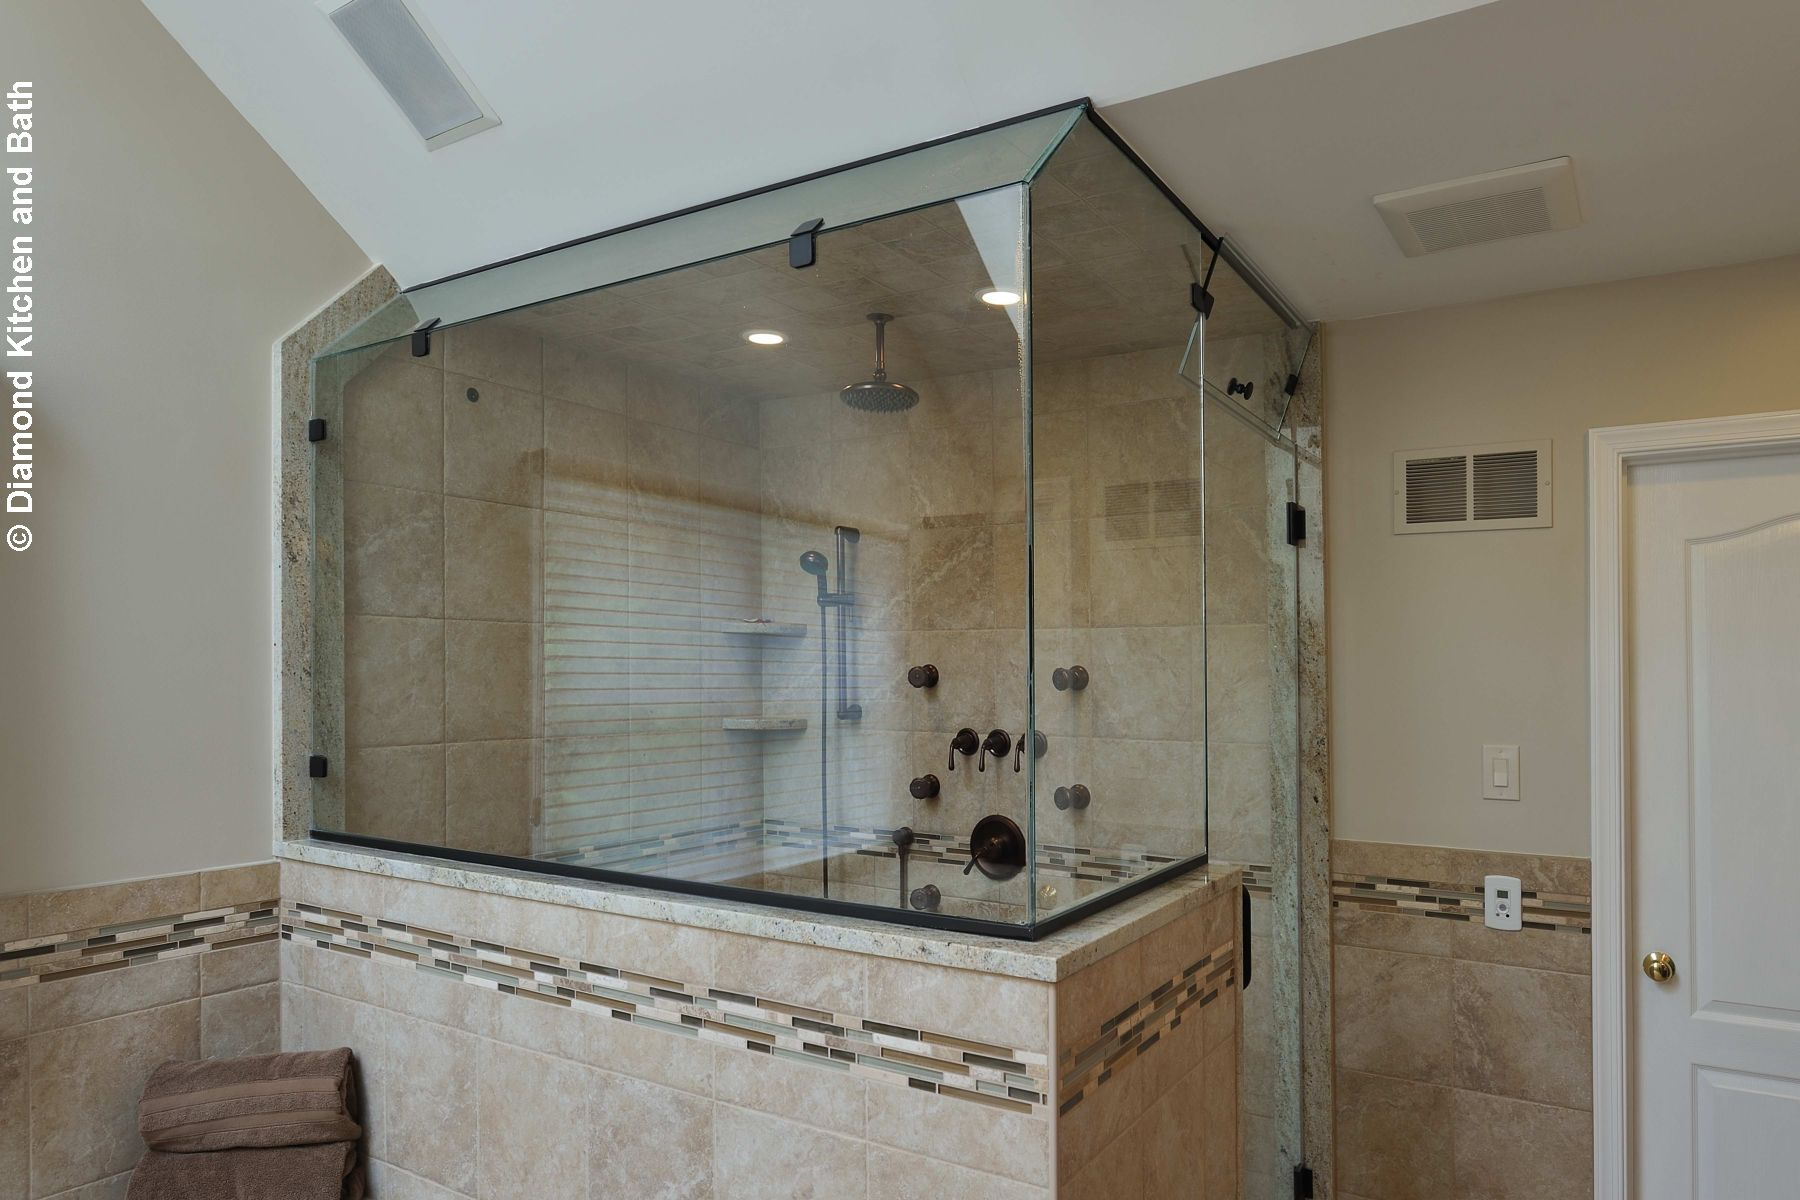 Bathroom Remodeling Virtual Tour in Media, PA